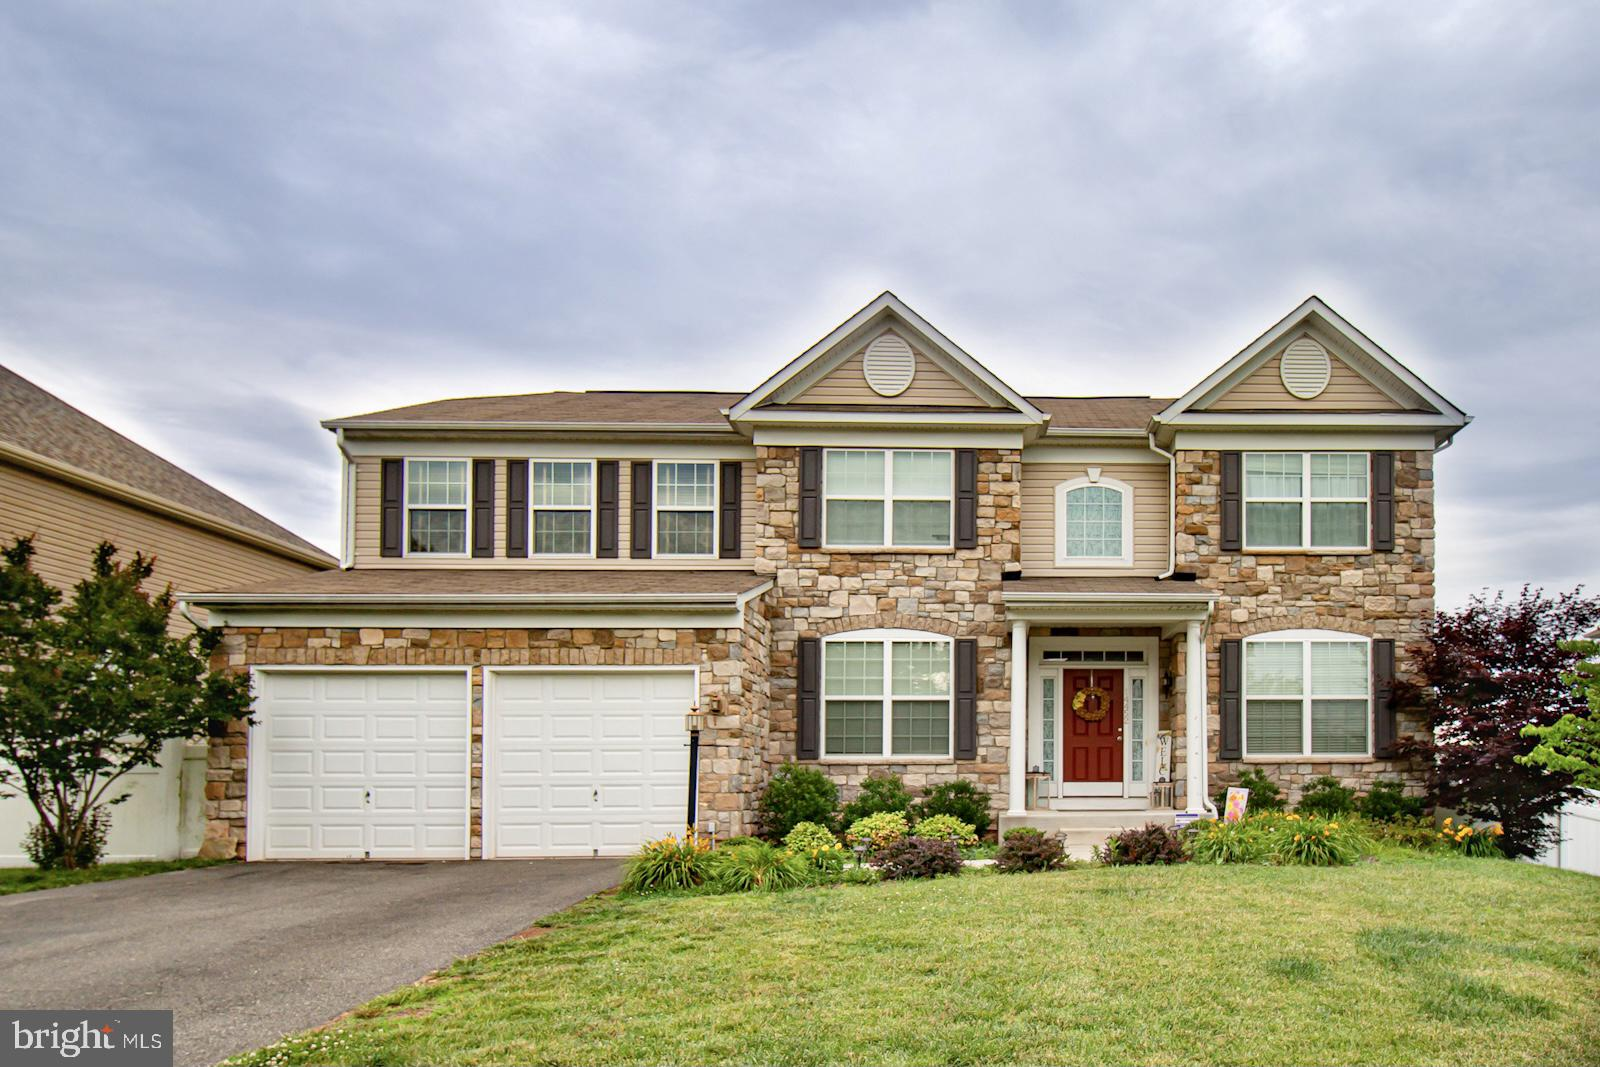 FIELDSTONE FRONT HOME WITH TWO CAR GARAGE AND TREX SUNDDECK. GOLDEN OAK HARDWOOD MAIN LEVEL -- FOYER